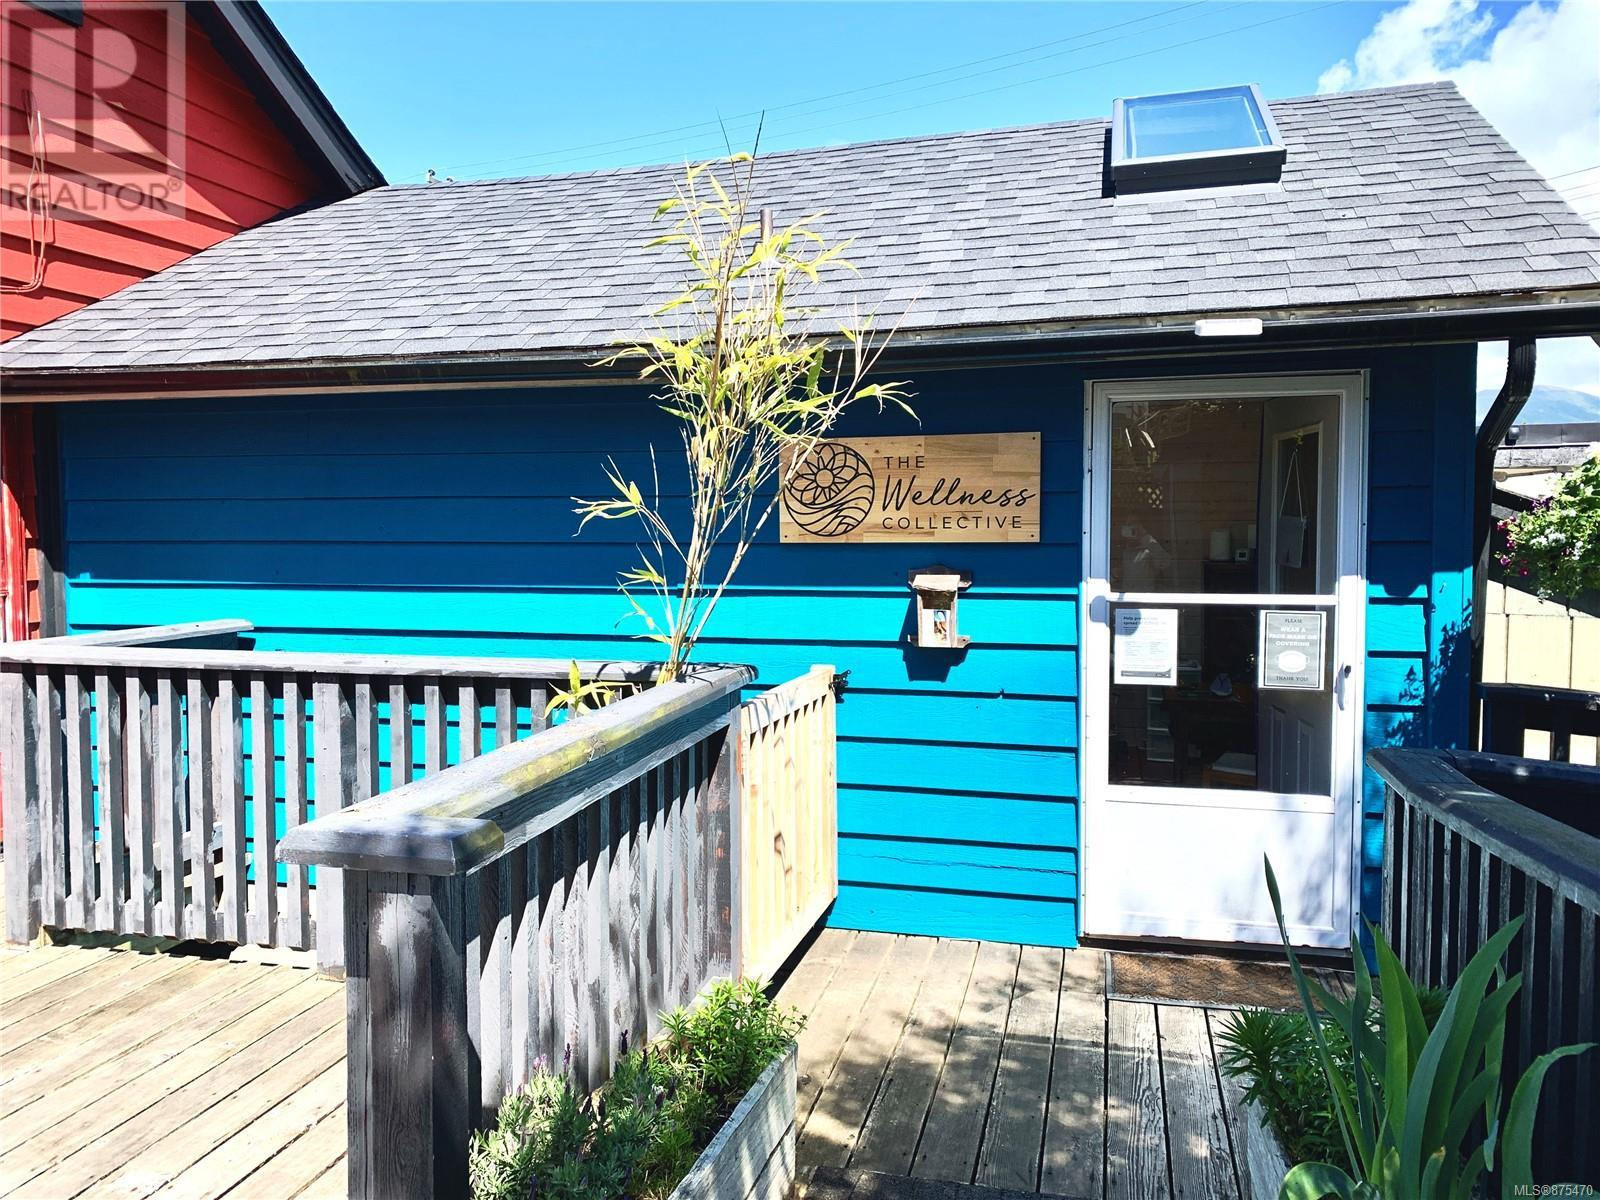 MLS® #875470 - Ucluelet For sale Image #1